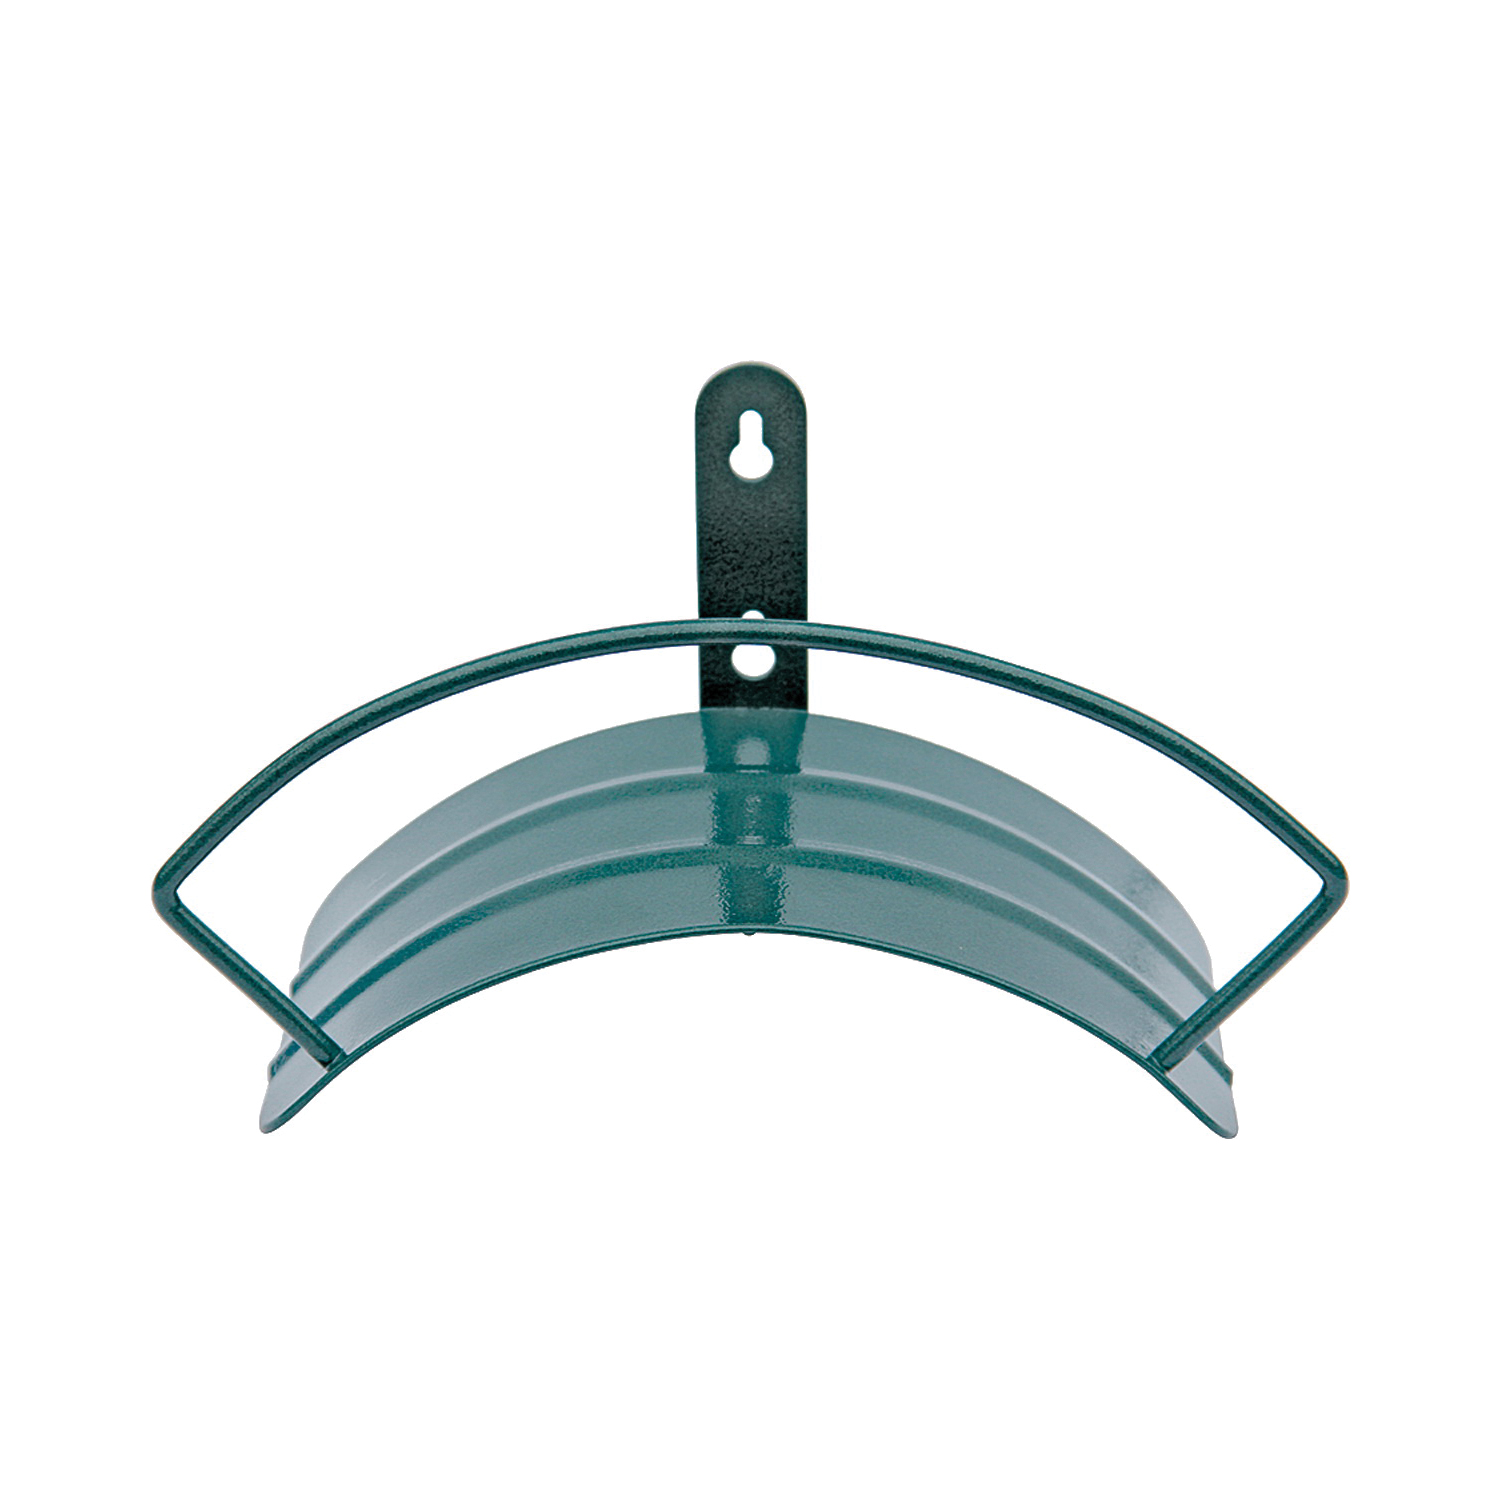 Picture of Landscapers Select 5227-1 Hose Hanger, 100 ft Capacity, Metal, Hammertone Green, Powder-Coated, Wall Mounting